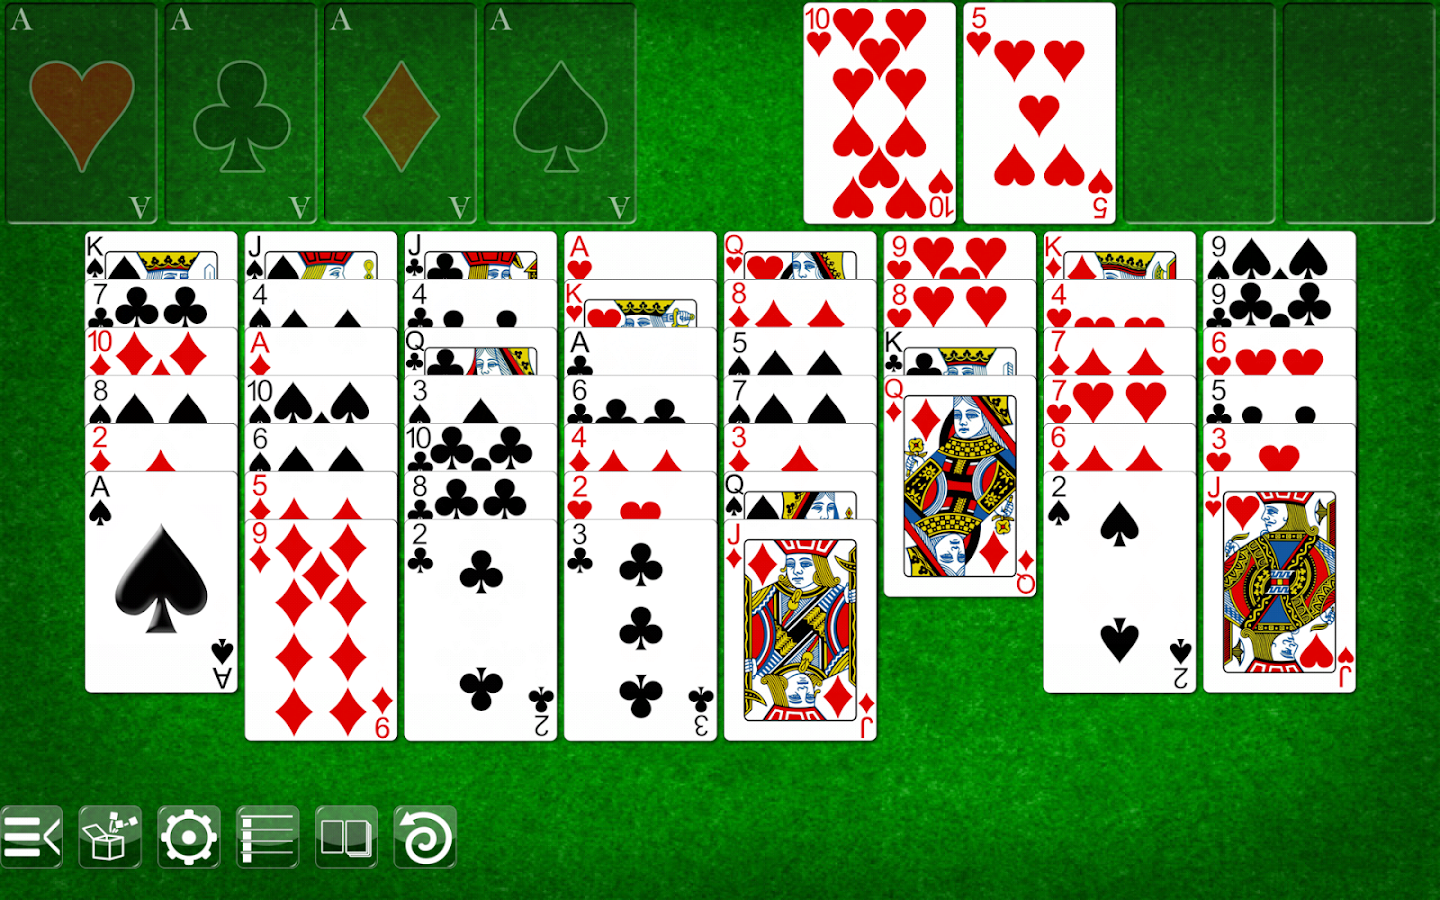 FreeCell Solitaire Free - Android Apps on Google Play